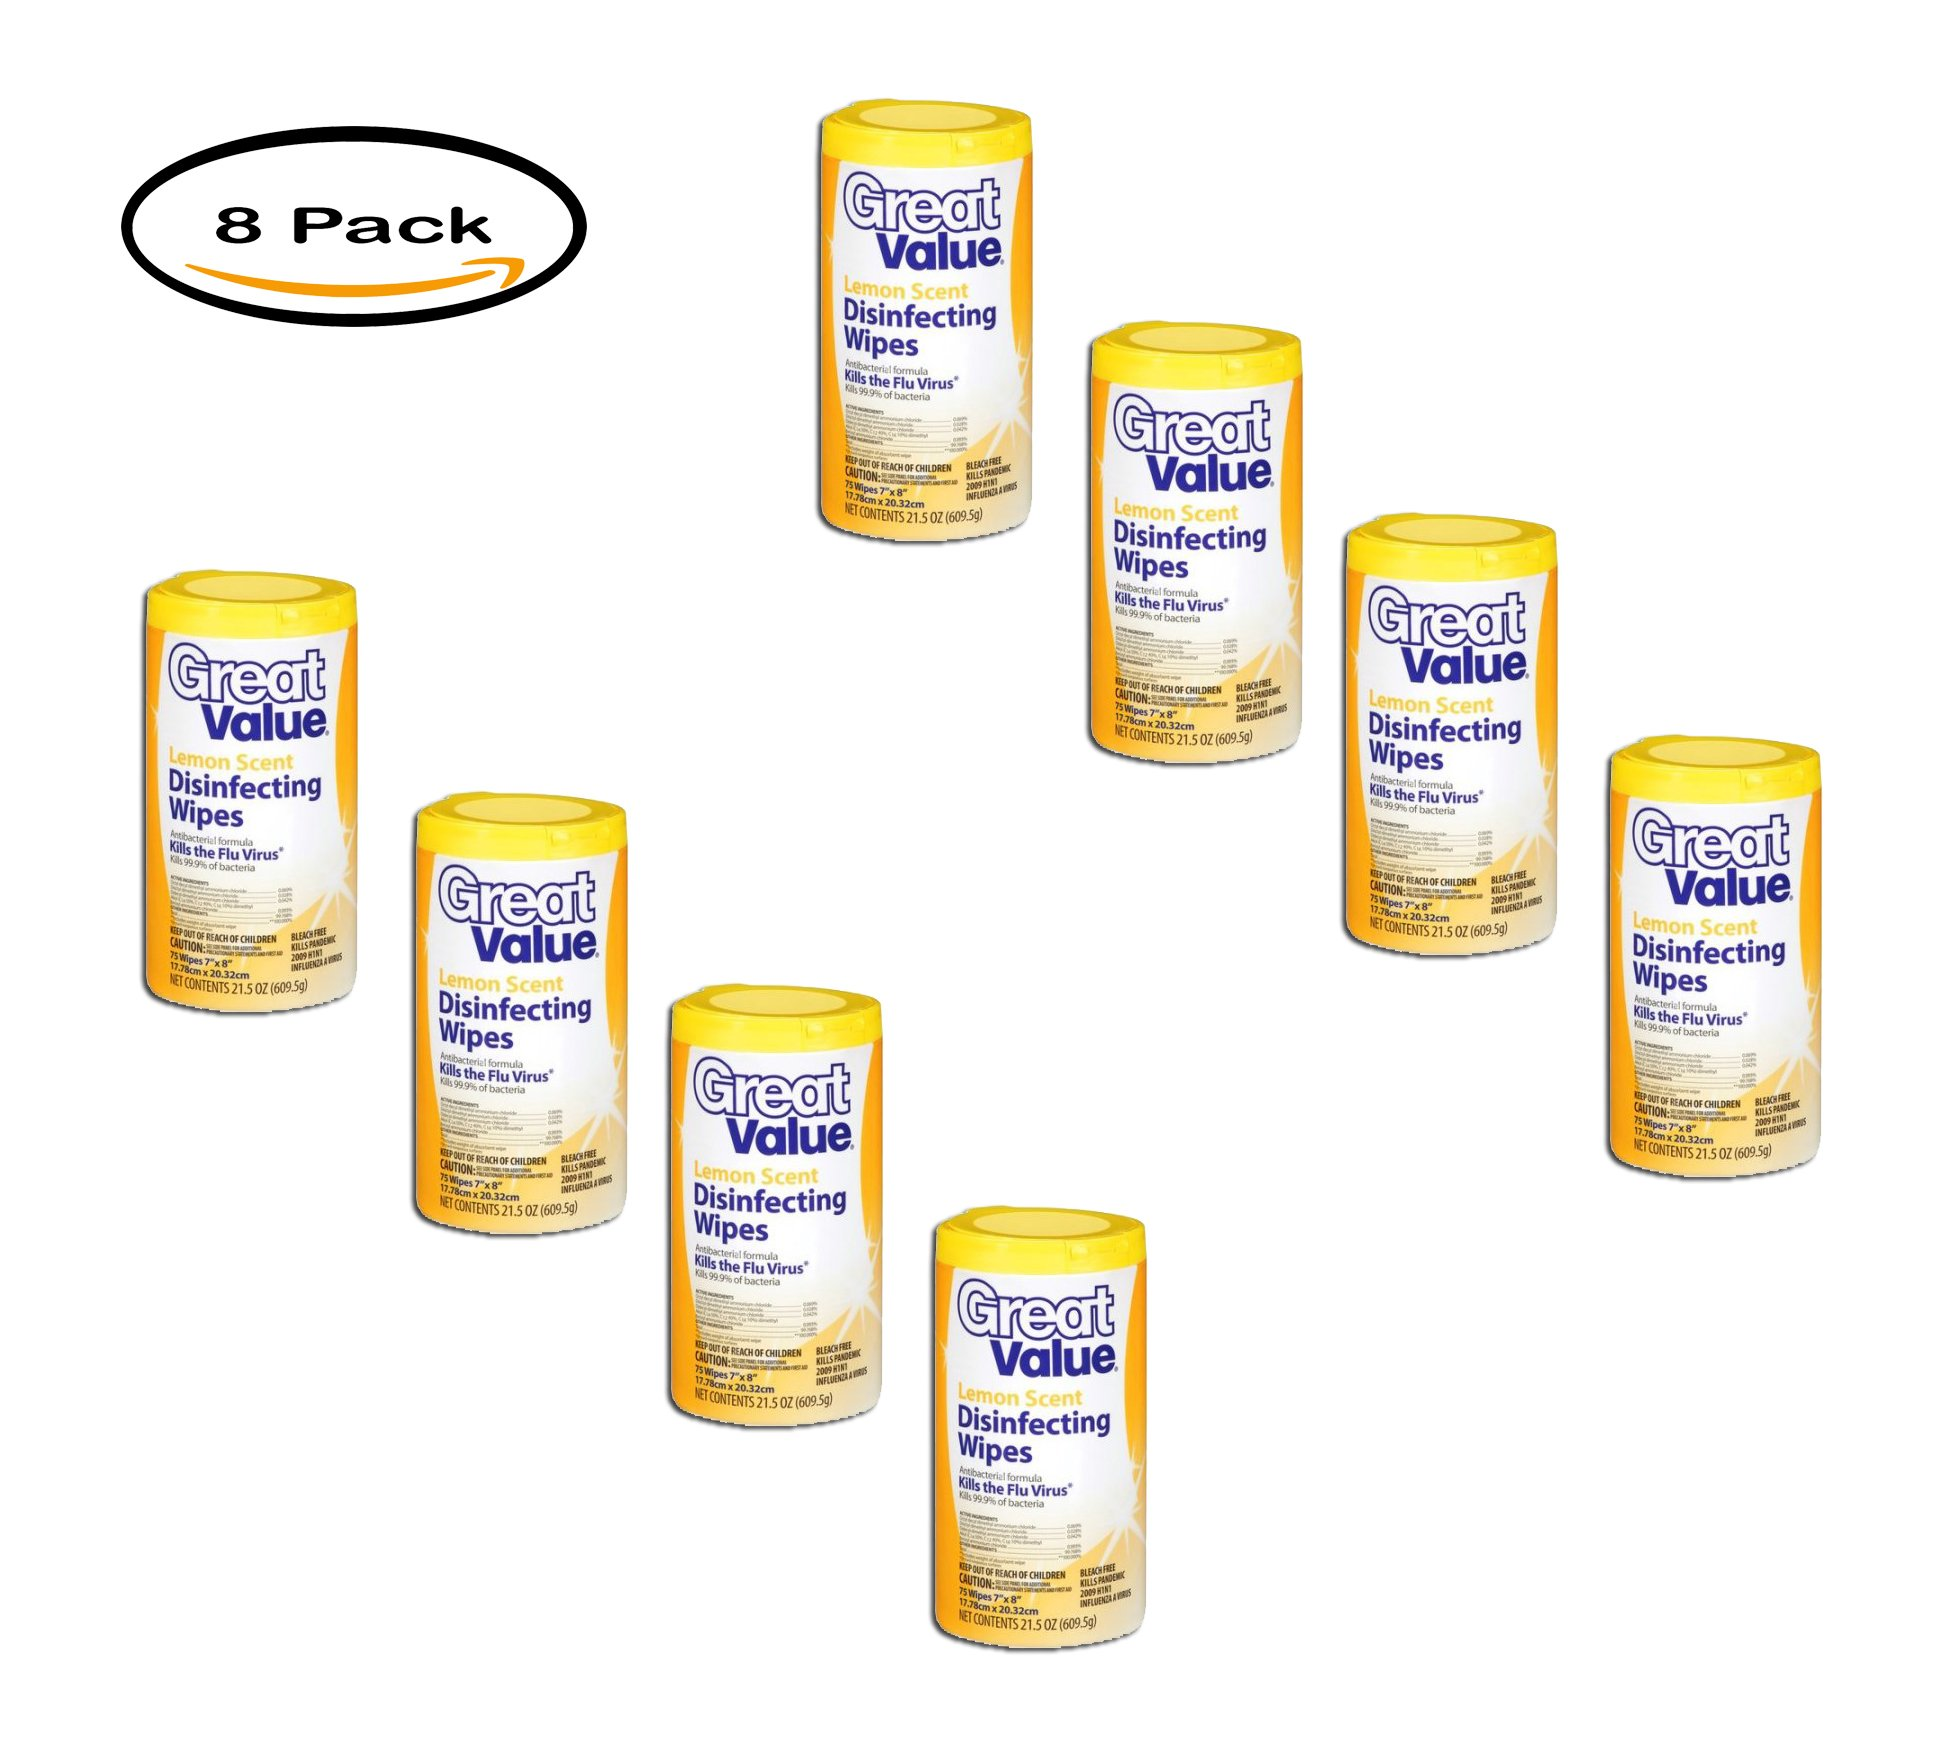 PACK OF 8 - Great Value Disinfecting Wipes, Lemon, 75 Wipes